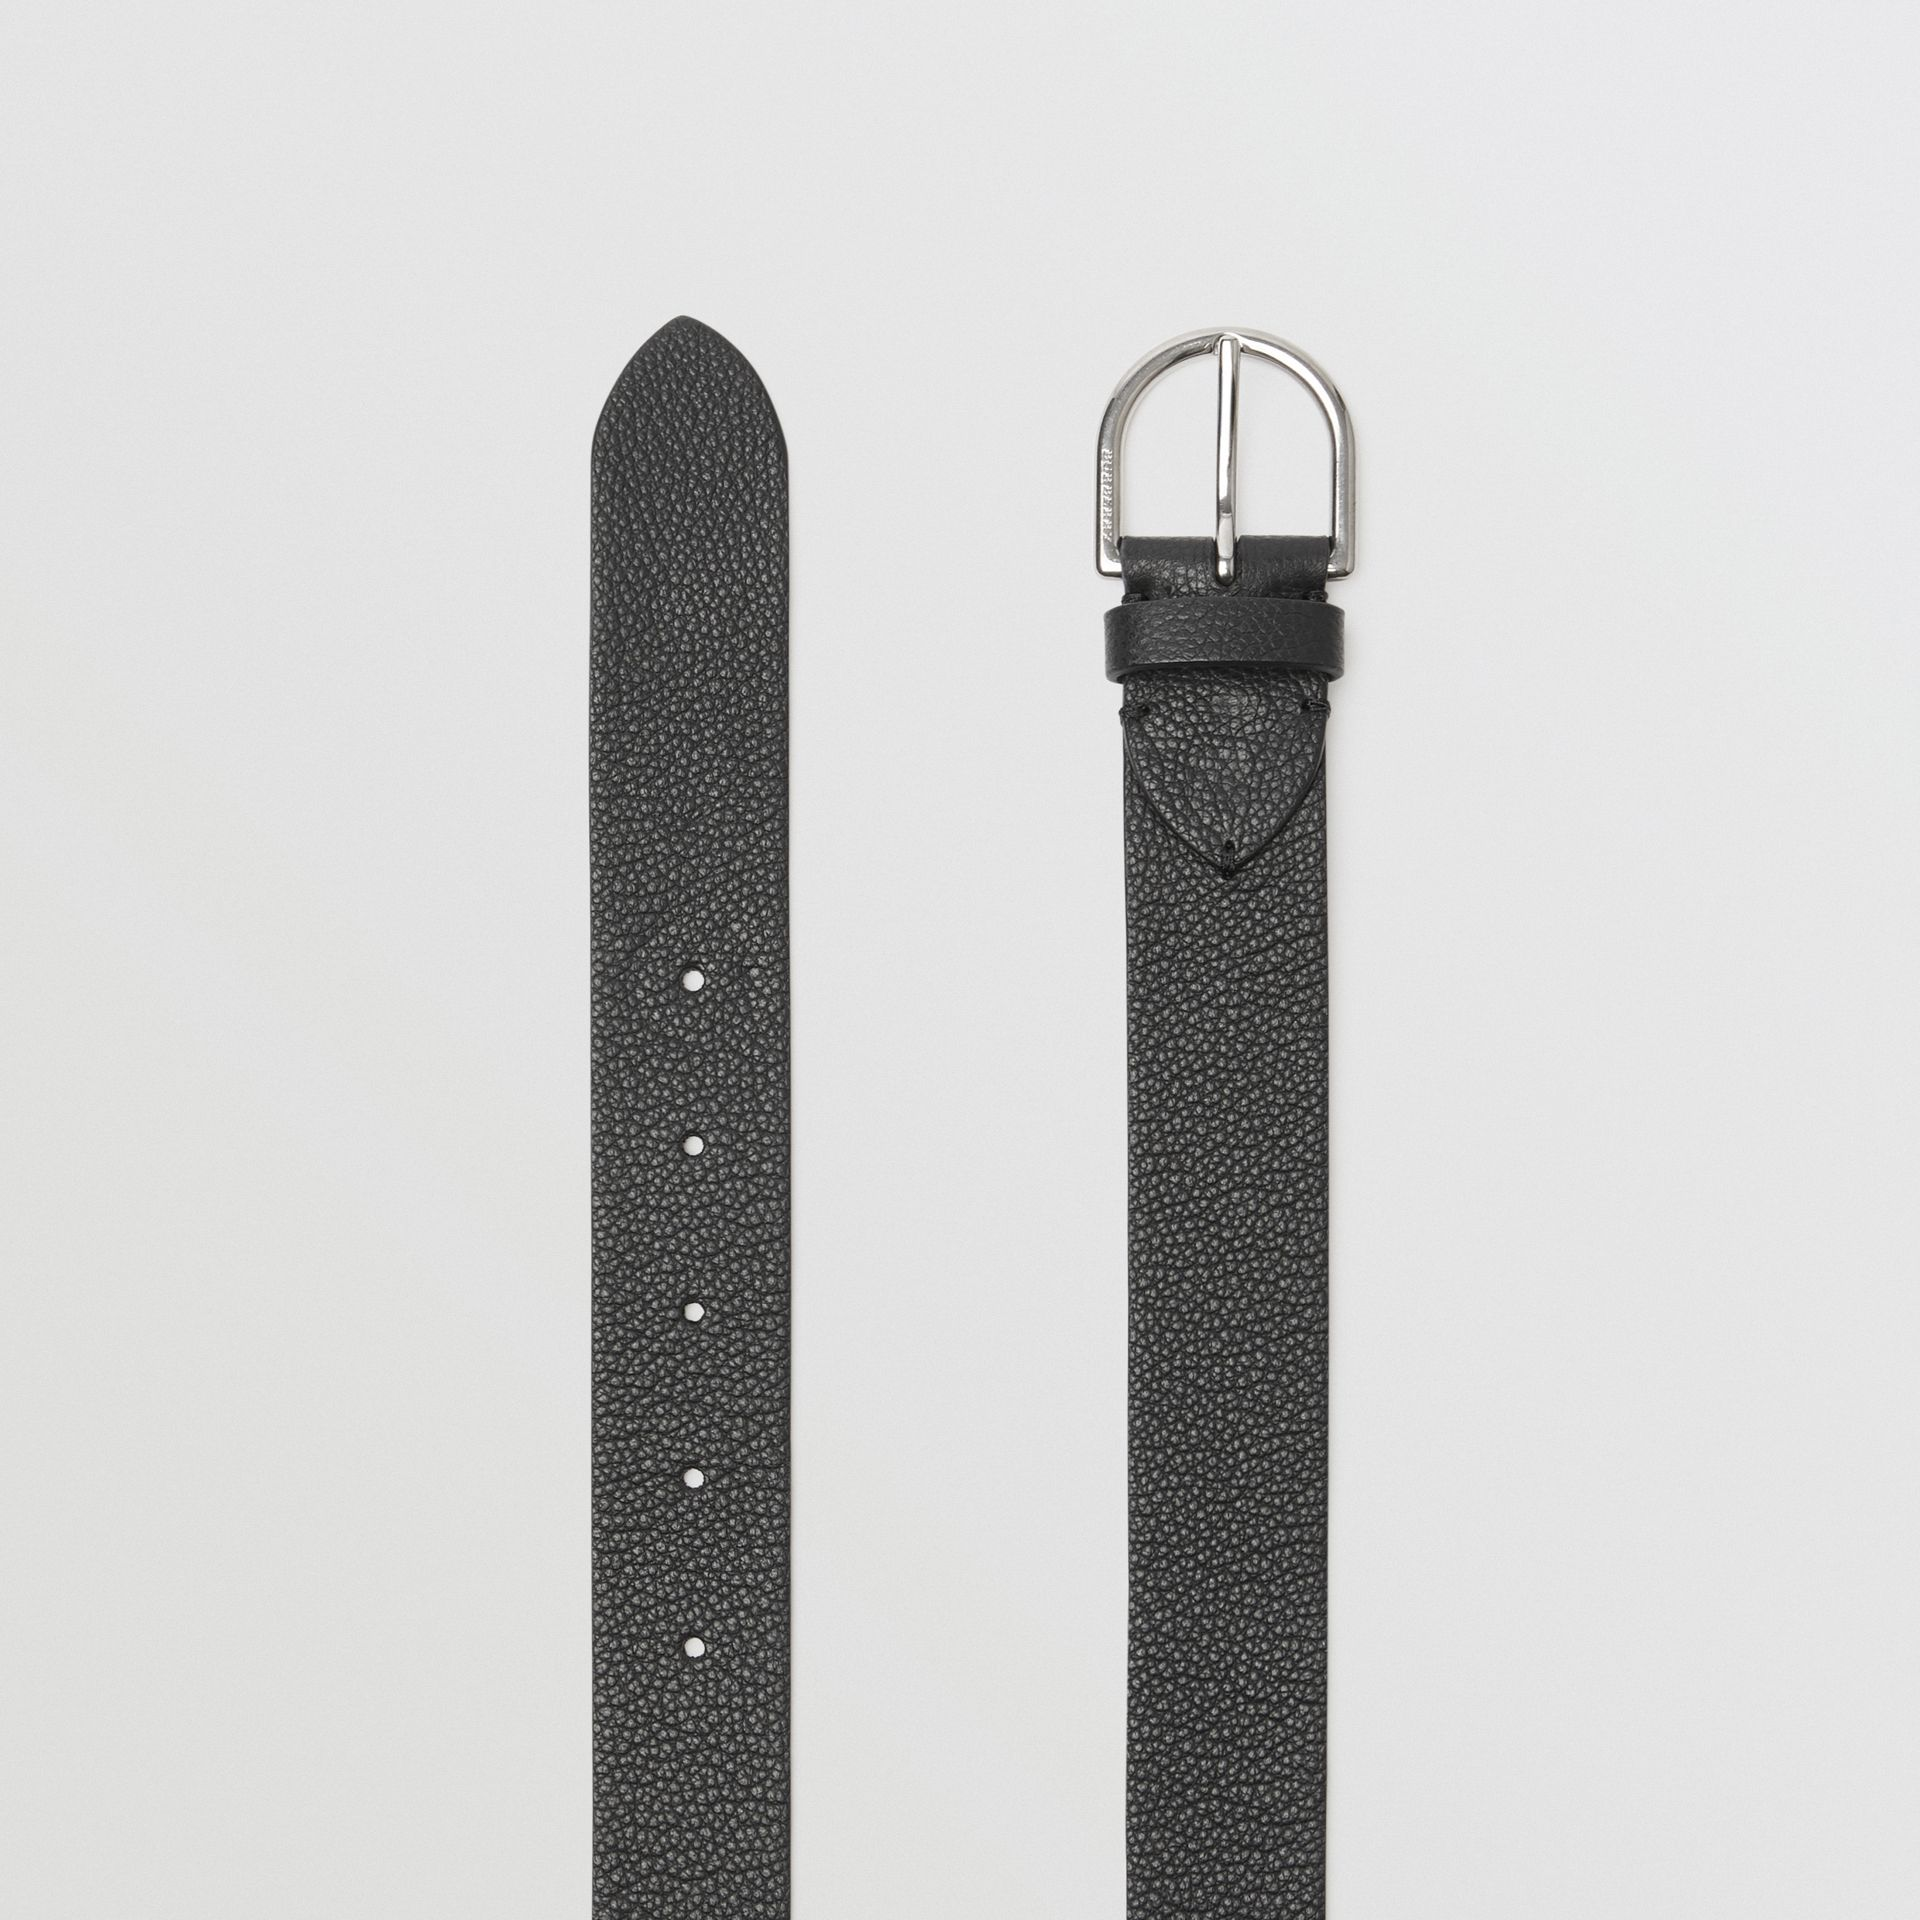 D-shaped Buckle Grainy Leather Belt in Black - Men | Burberry Singapore - gallery image 5